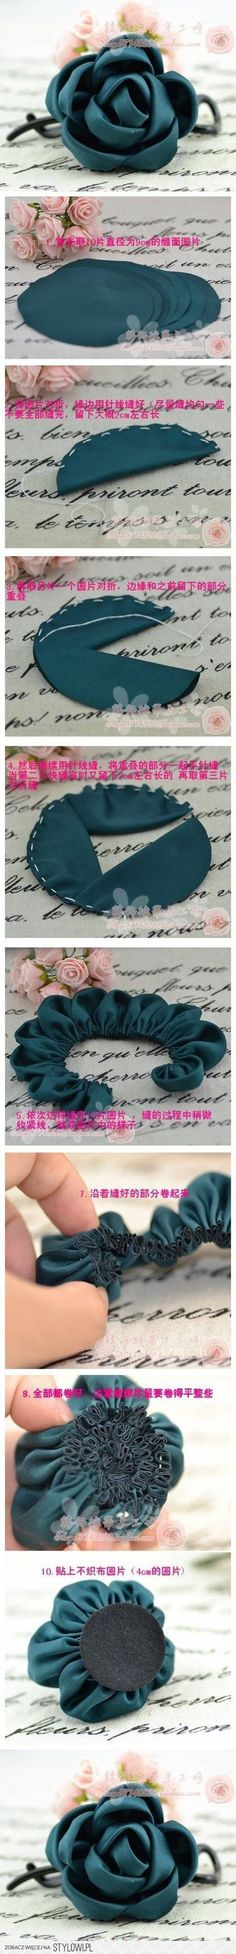 DIY Easy Fabric Roses DIY Projects | UsefulDIY.com na Stylowi.pl